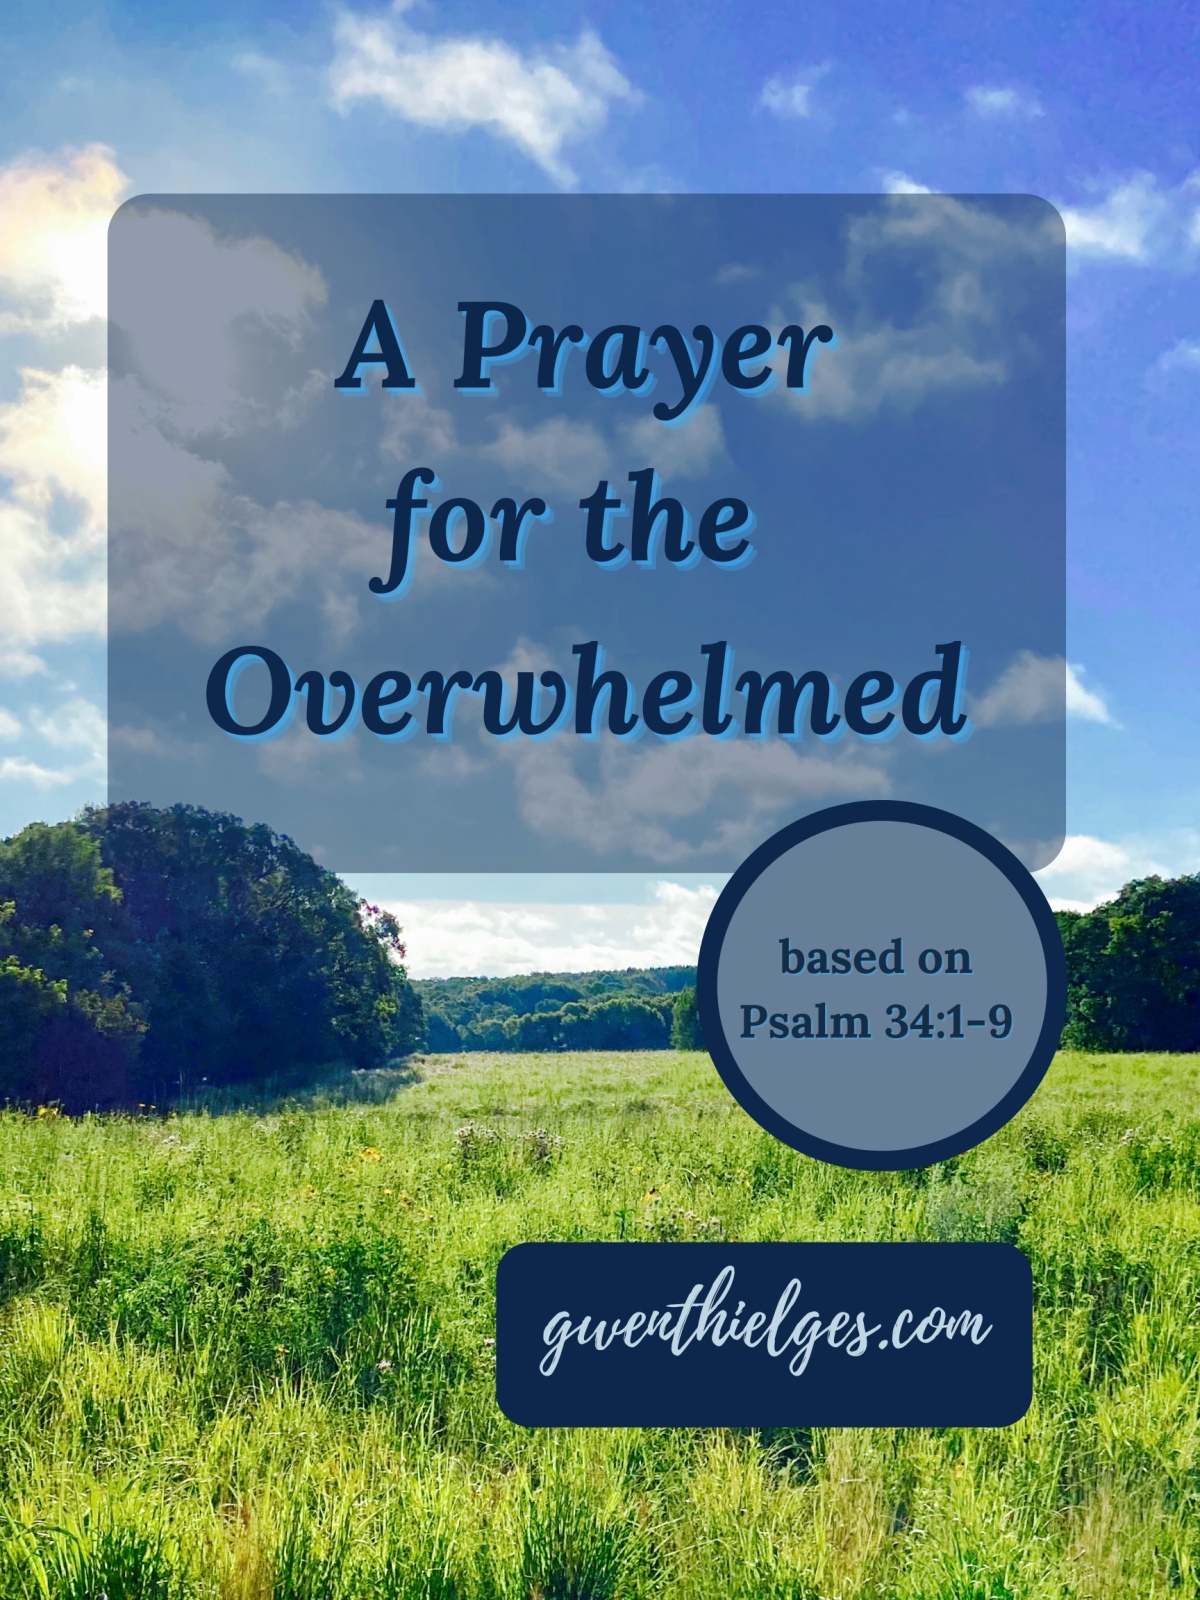 Prayer for the Overwhelmed (based on Psalm 34:1-9)